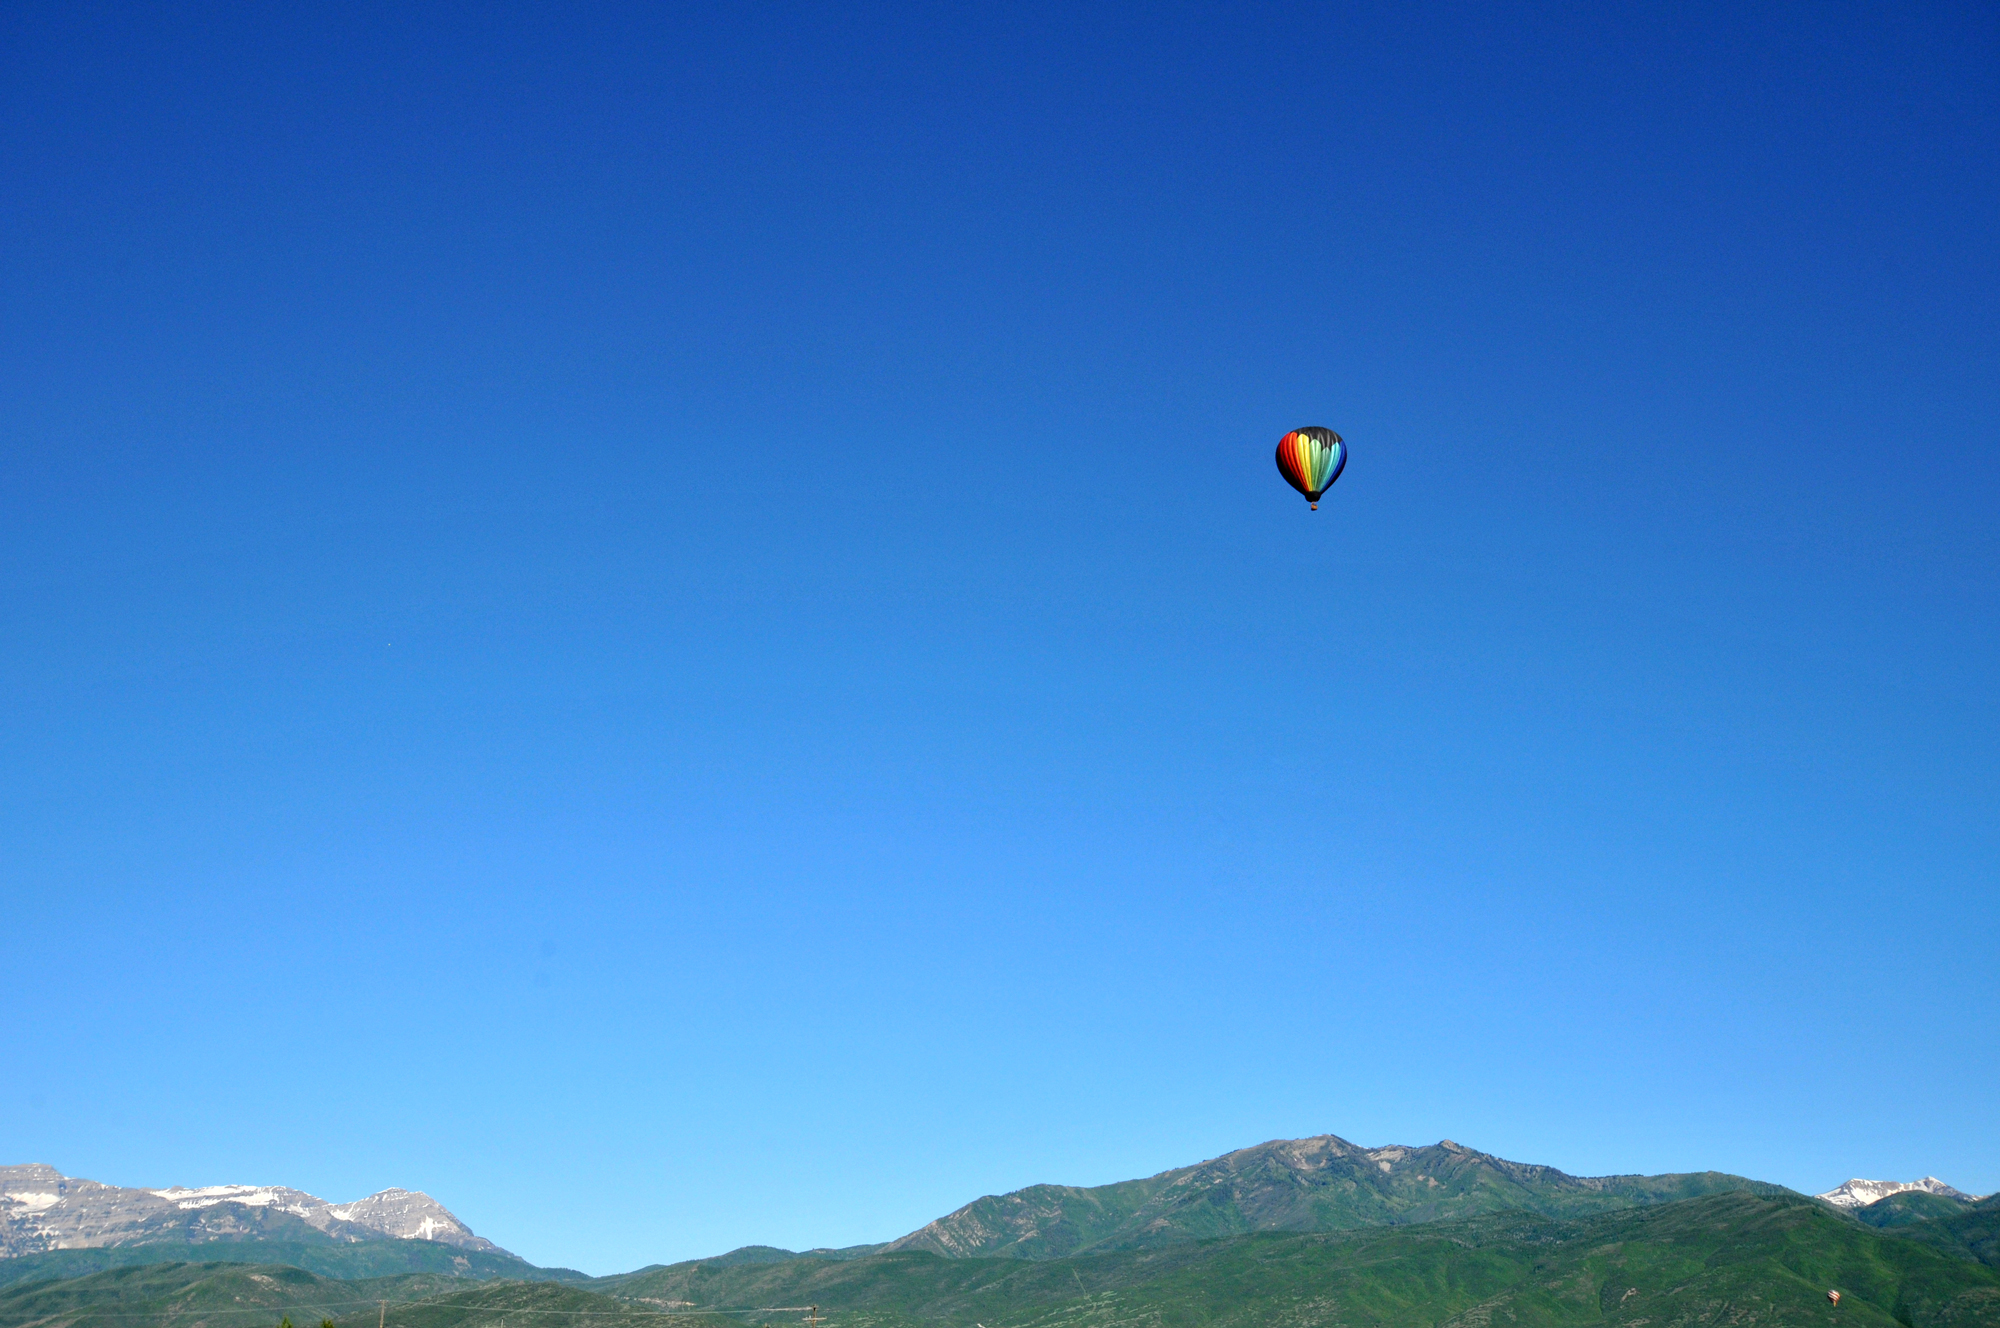 About to take off in a hot air balloon, Park City, Utah, June 2010 (number 67)